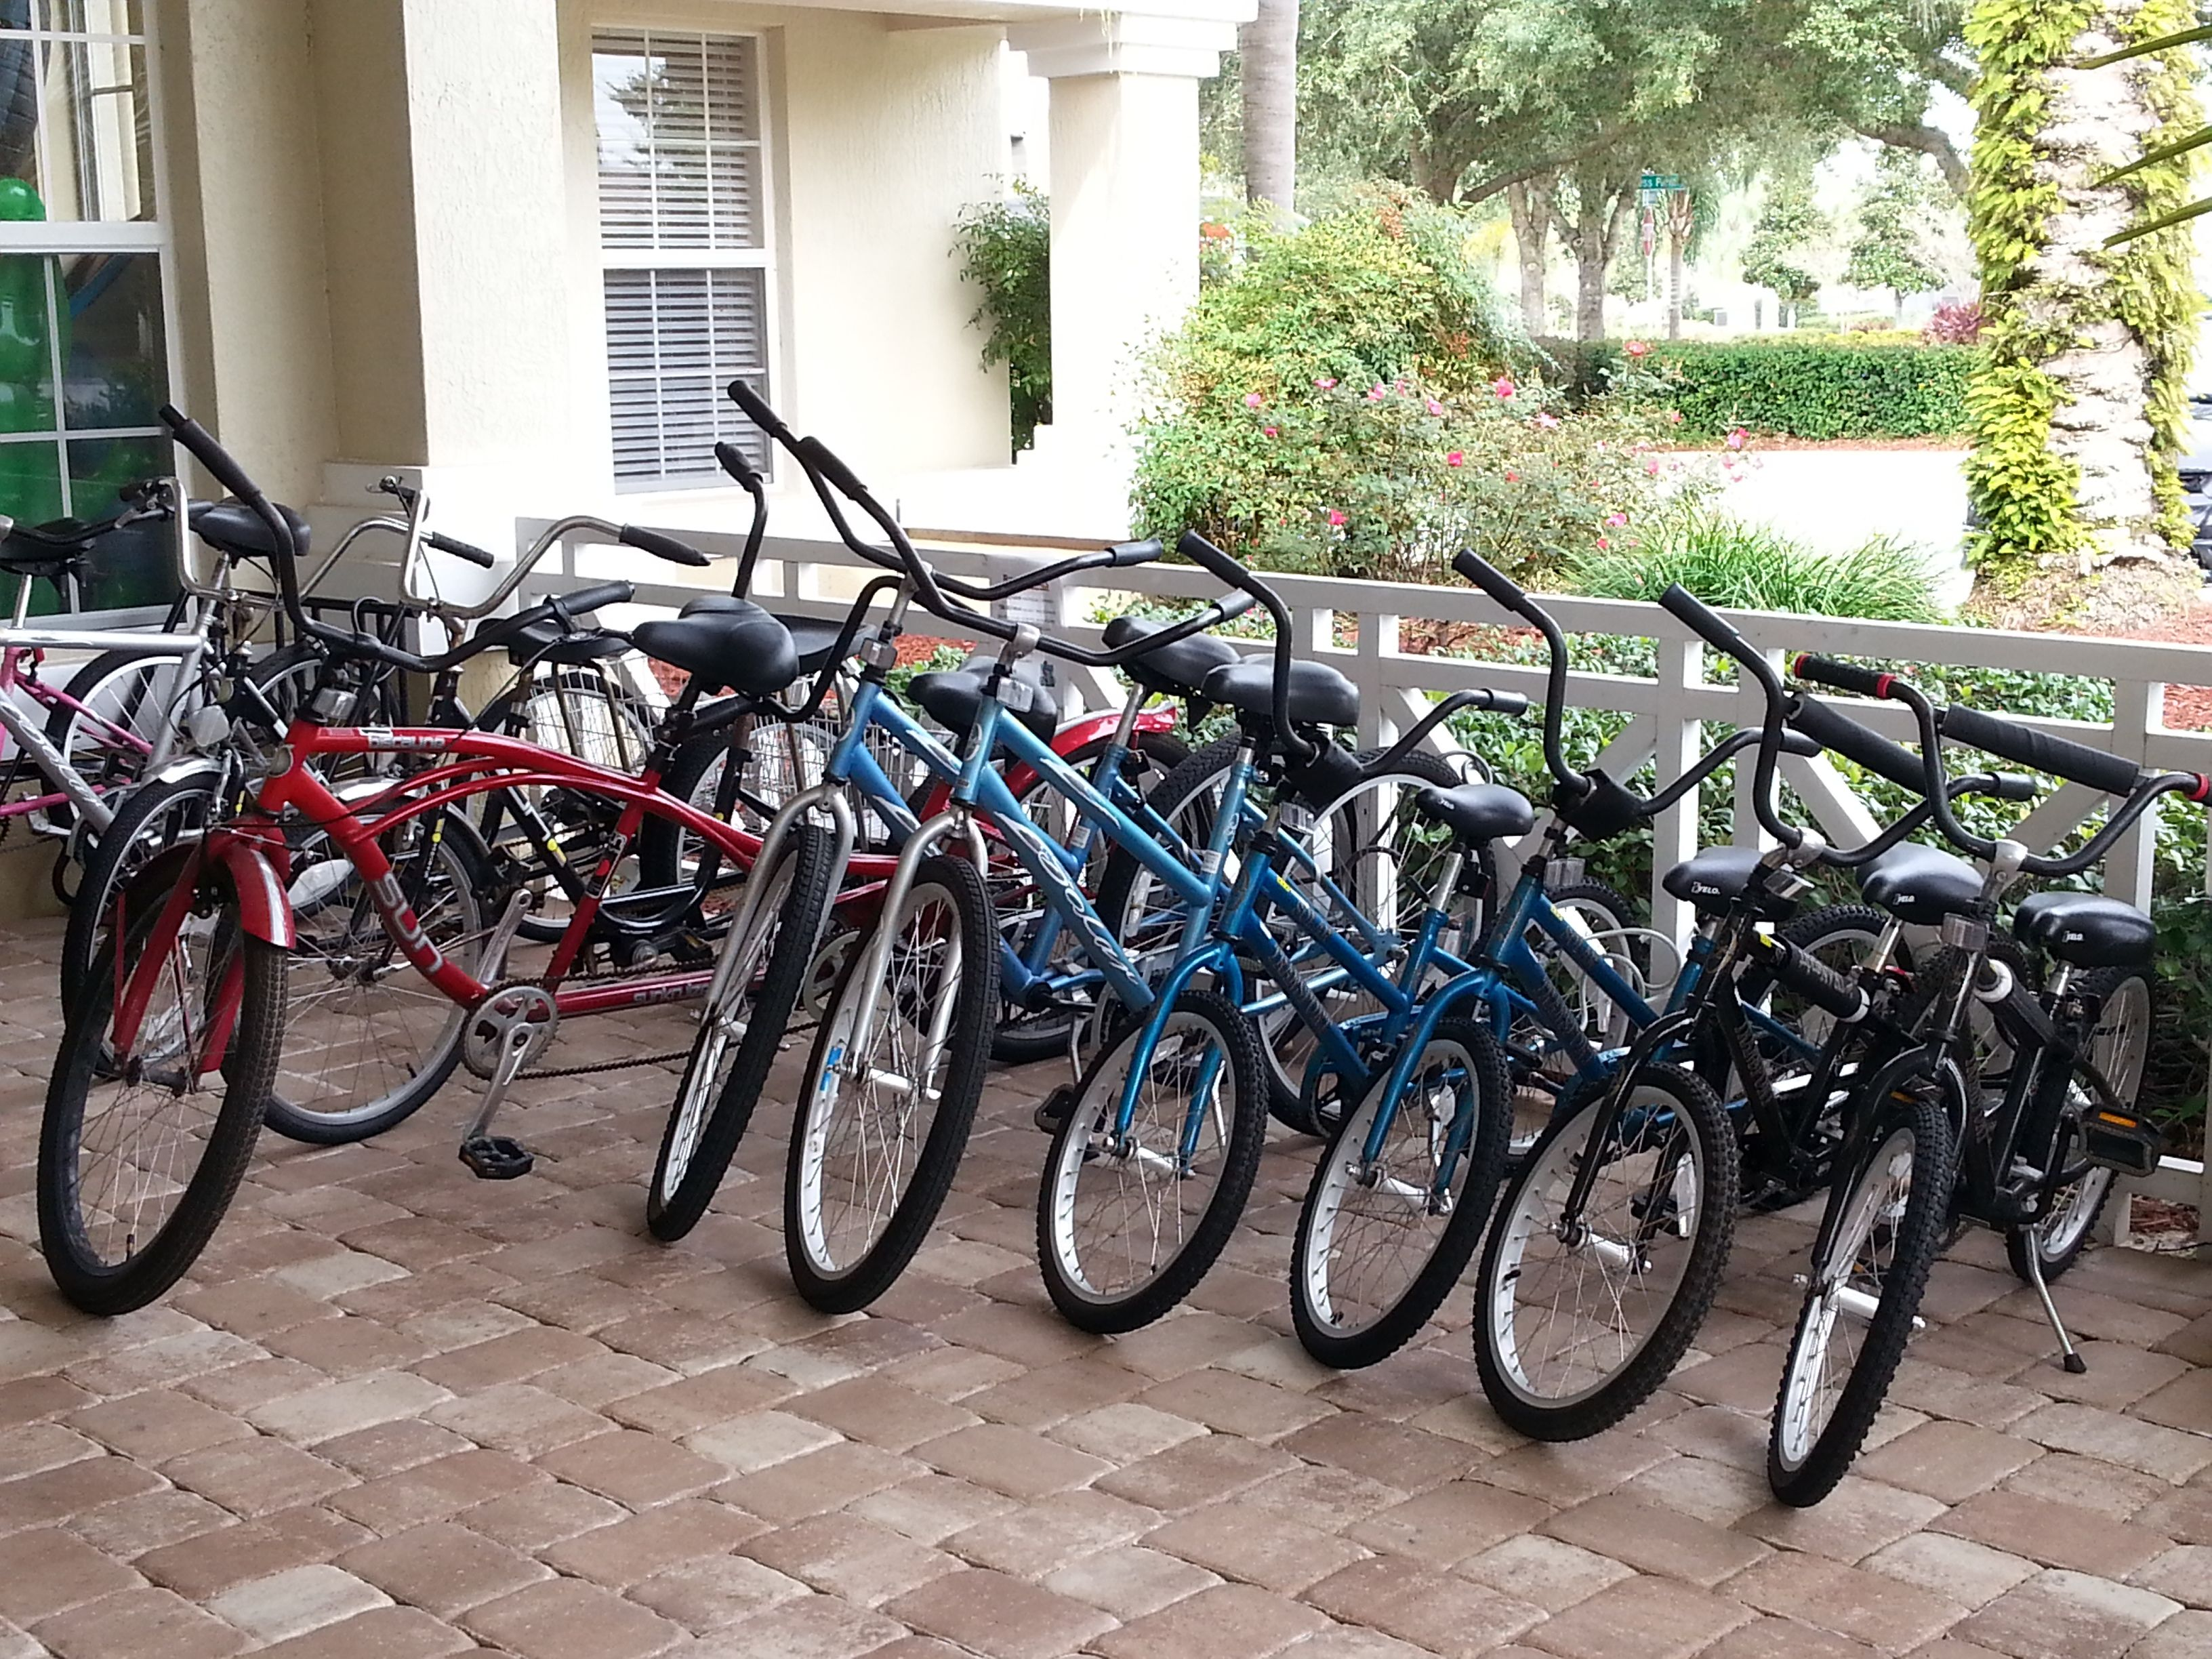 Bike Rental Available Is One Of The Many Amenities You Ll Enjoy